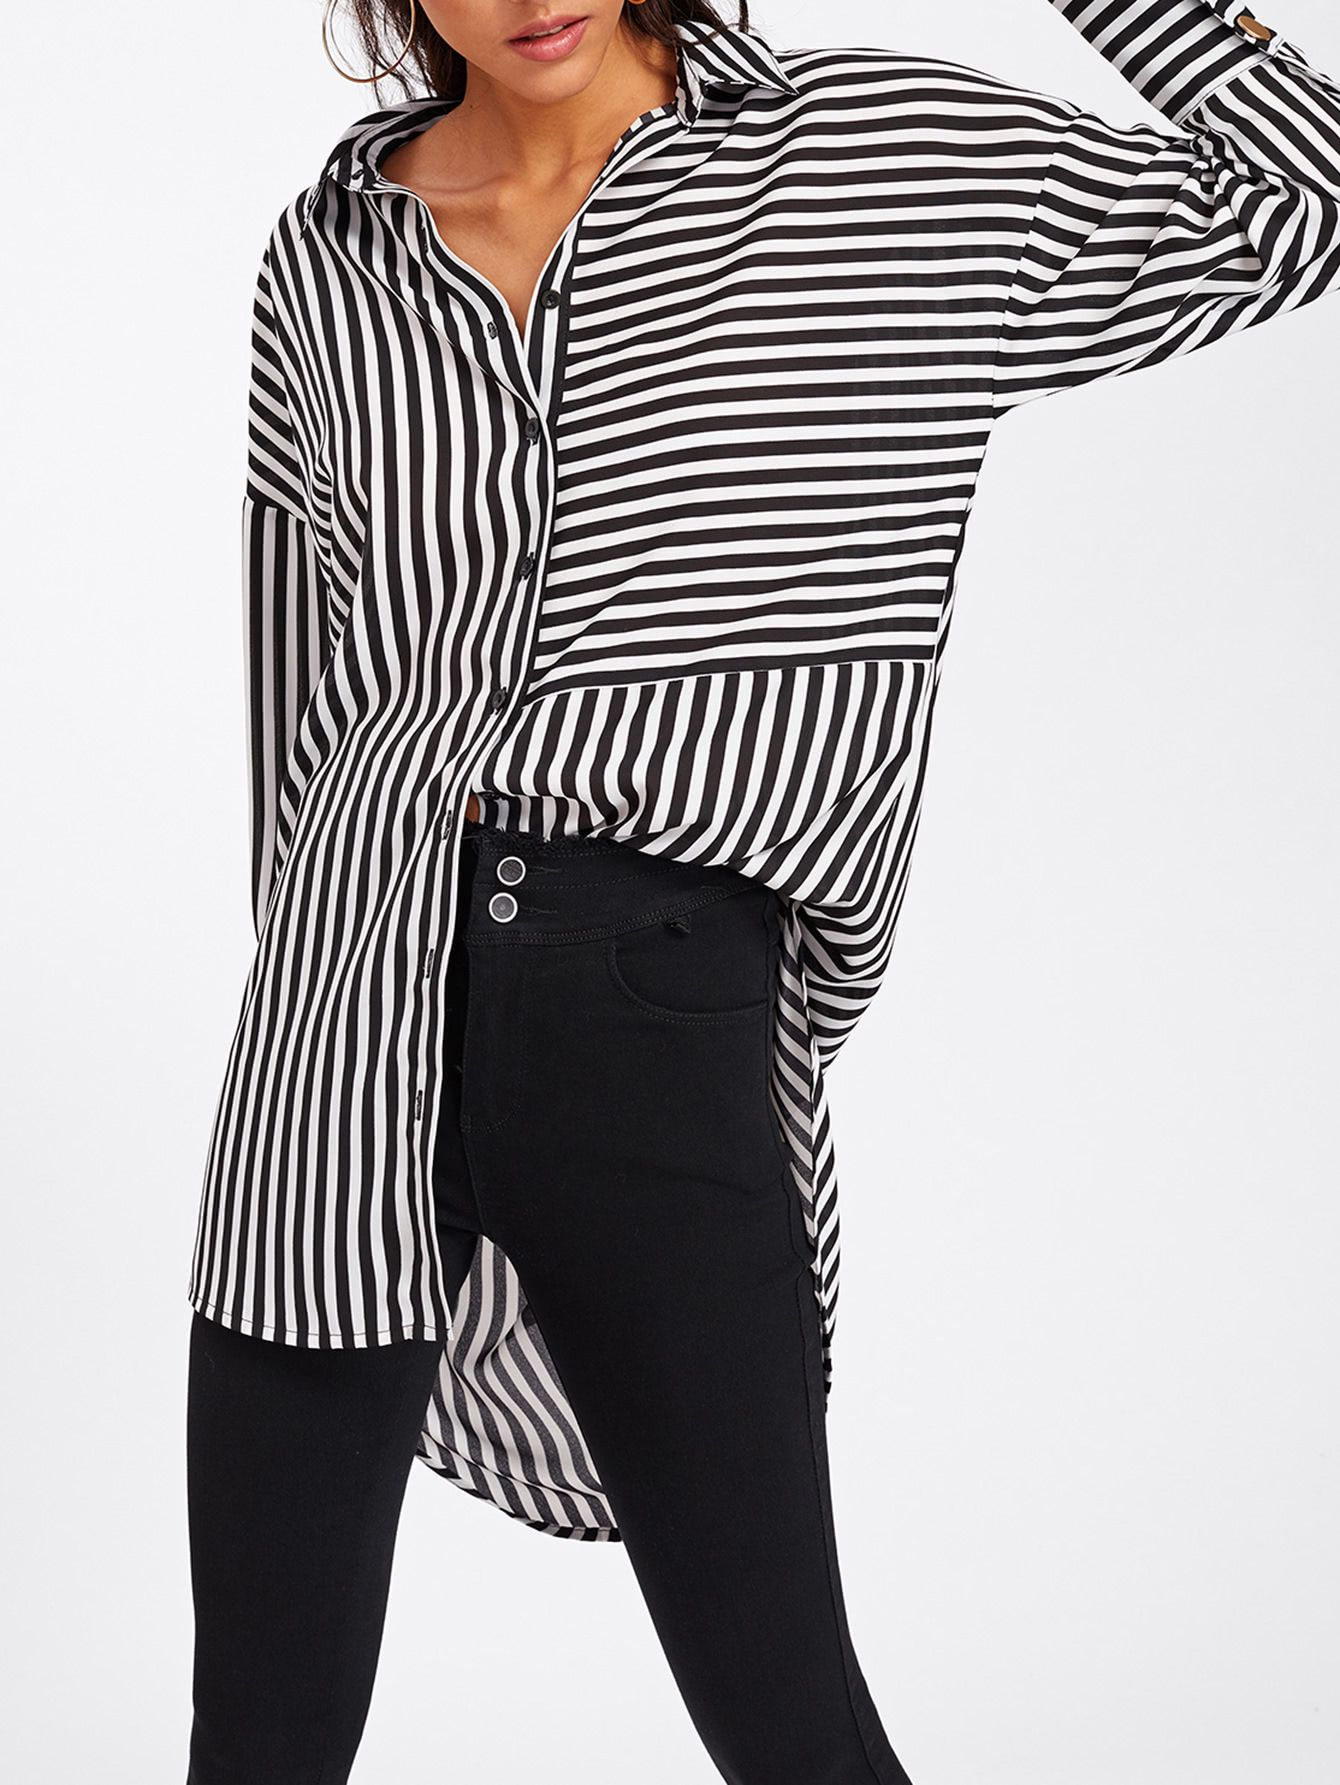 5069965eb7 Shop Dolphin Hem Mixed Stripe Shirt online. SheIn offers Dolphin Hem Mixed  Stripe Shirt & more to fit your fashionable needs.